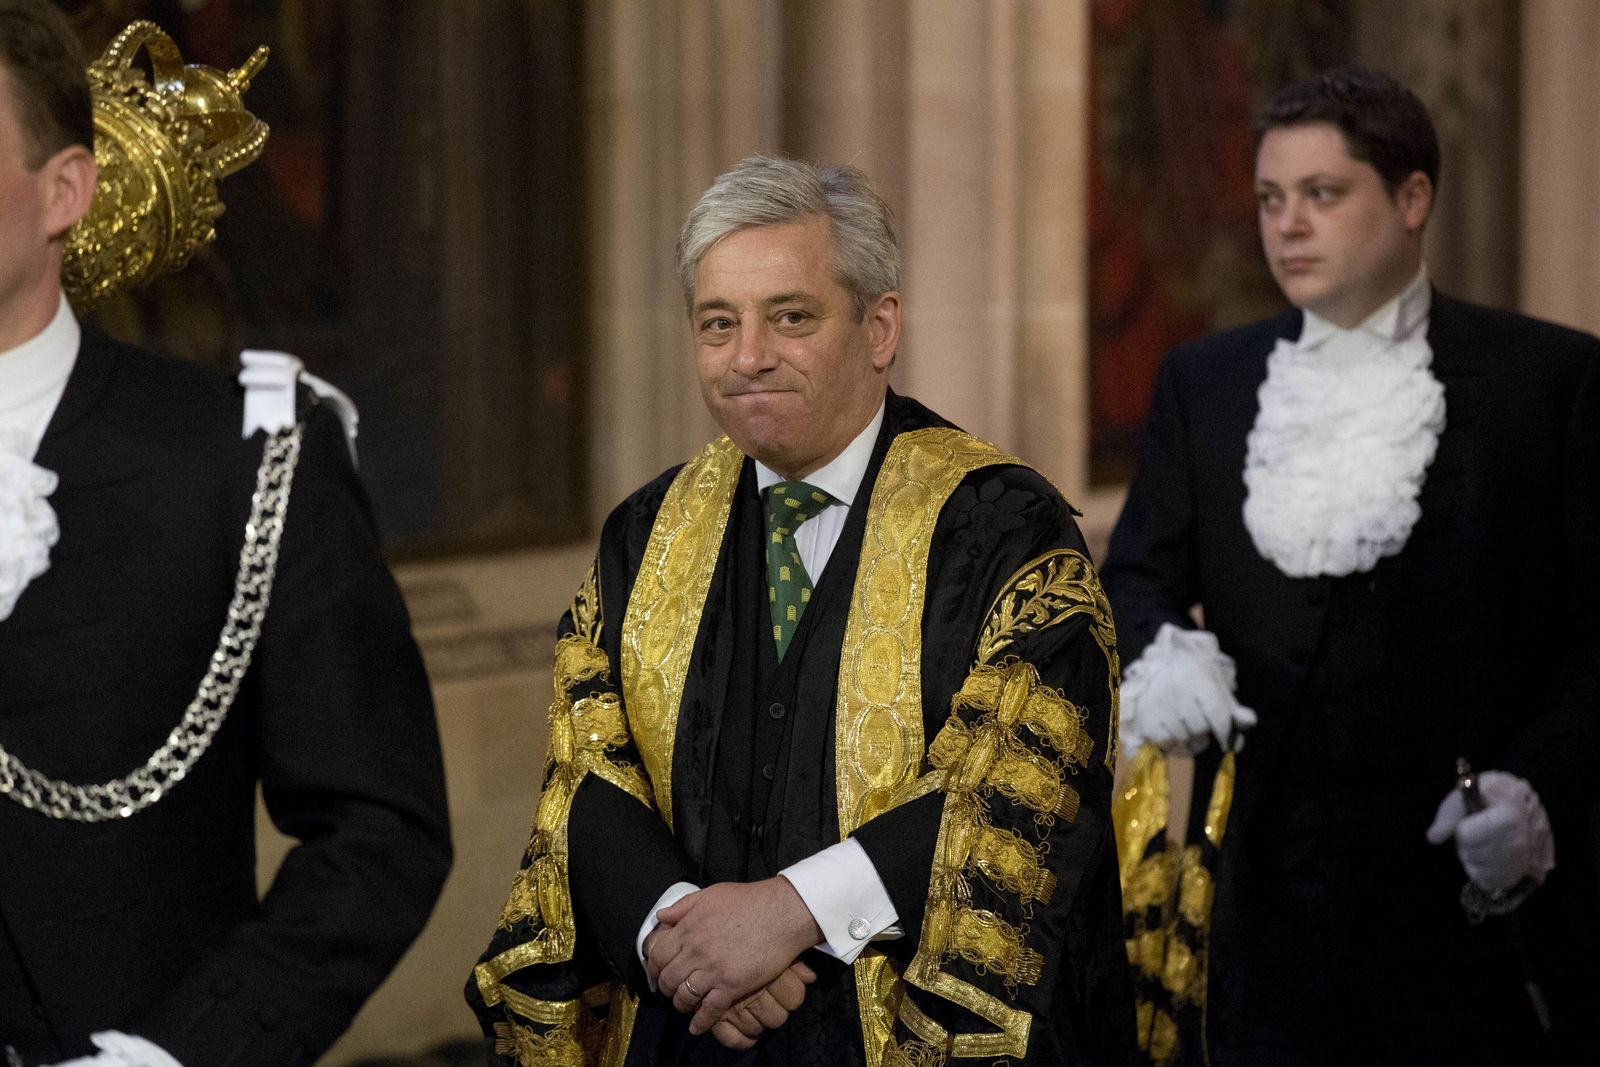 FILE - In this Wednesday, June 4, 2014 file photo, Britain's Speaker of the House of Commons John Bercow he walks through Central Lobby before Britain's Queen Elizabeth II delivered the Queen's Speech at the State Opening of Parliament at the Palace of Westminster in London. A colorful era in British parliamentary history is coming to a close with Speaker of the House John Bercow's abrupt announcement Monday, Sept. 9, 2019 that he will leave his influential post by the end of October.  (AP Photo/Matt Dunham, Pool, File)